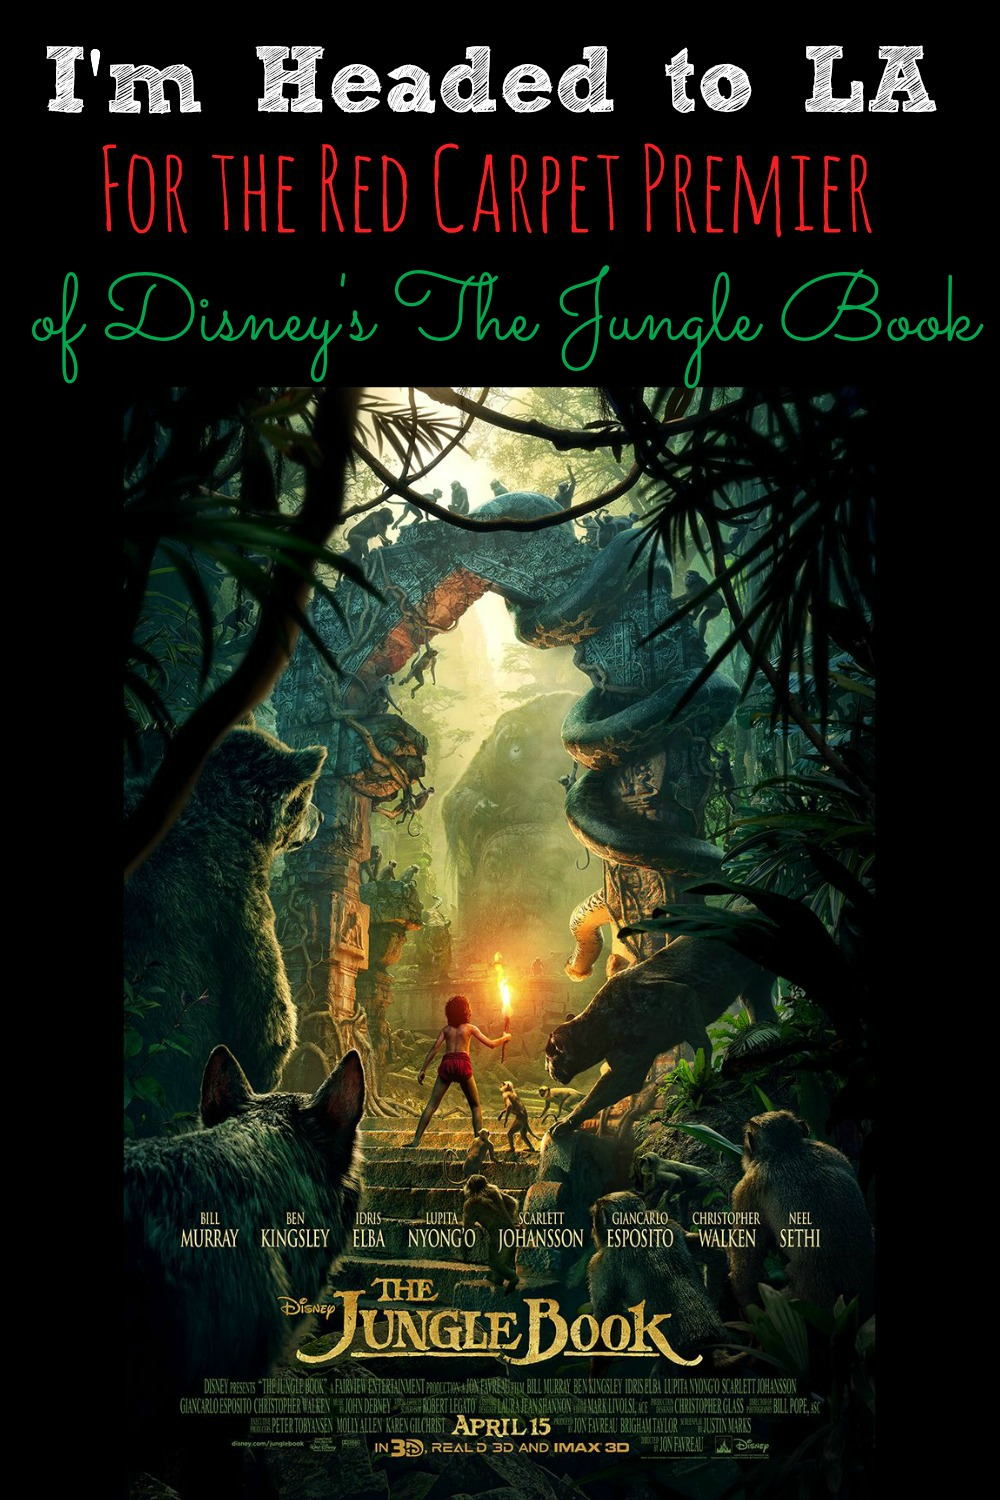 I'm Headed to LA For the Red Carpet Premier of Disney's The Jungle Book